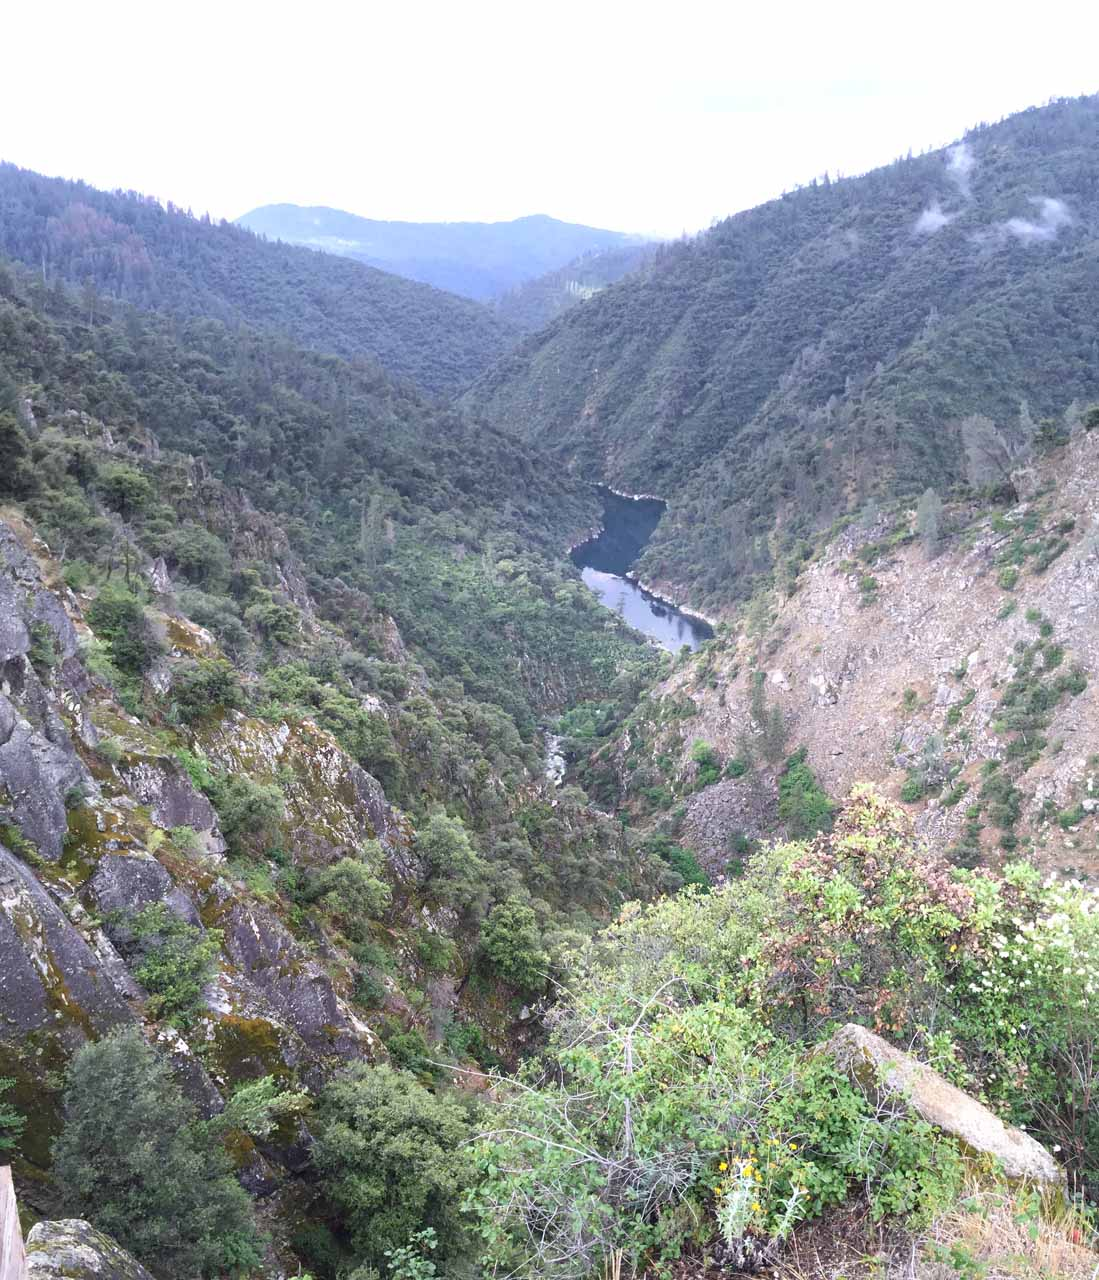 The view of the Middle Fork Feather River and the headwaters of Lake Oroville from the lookout at the top of the climb